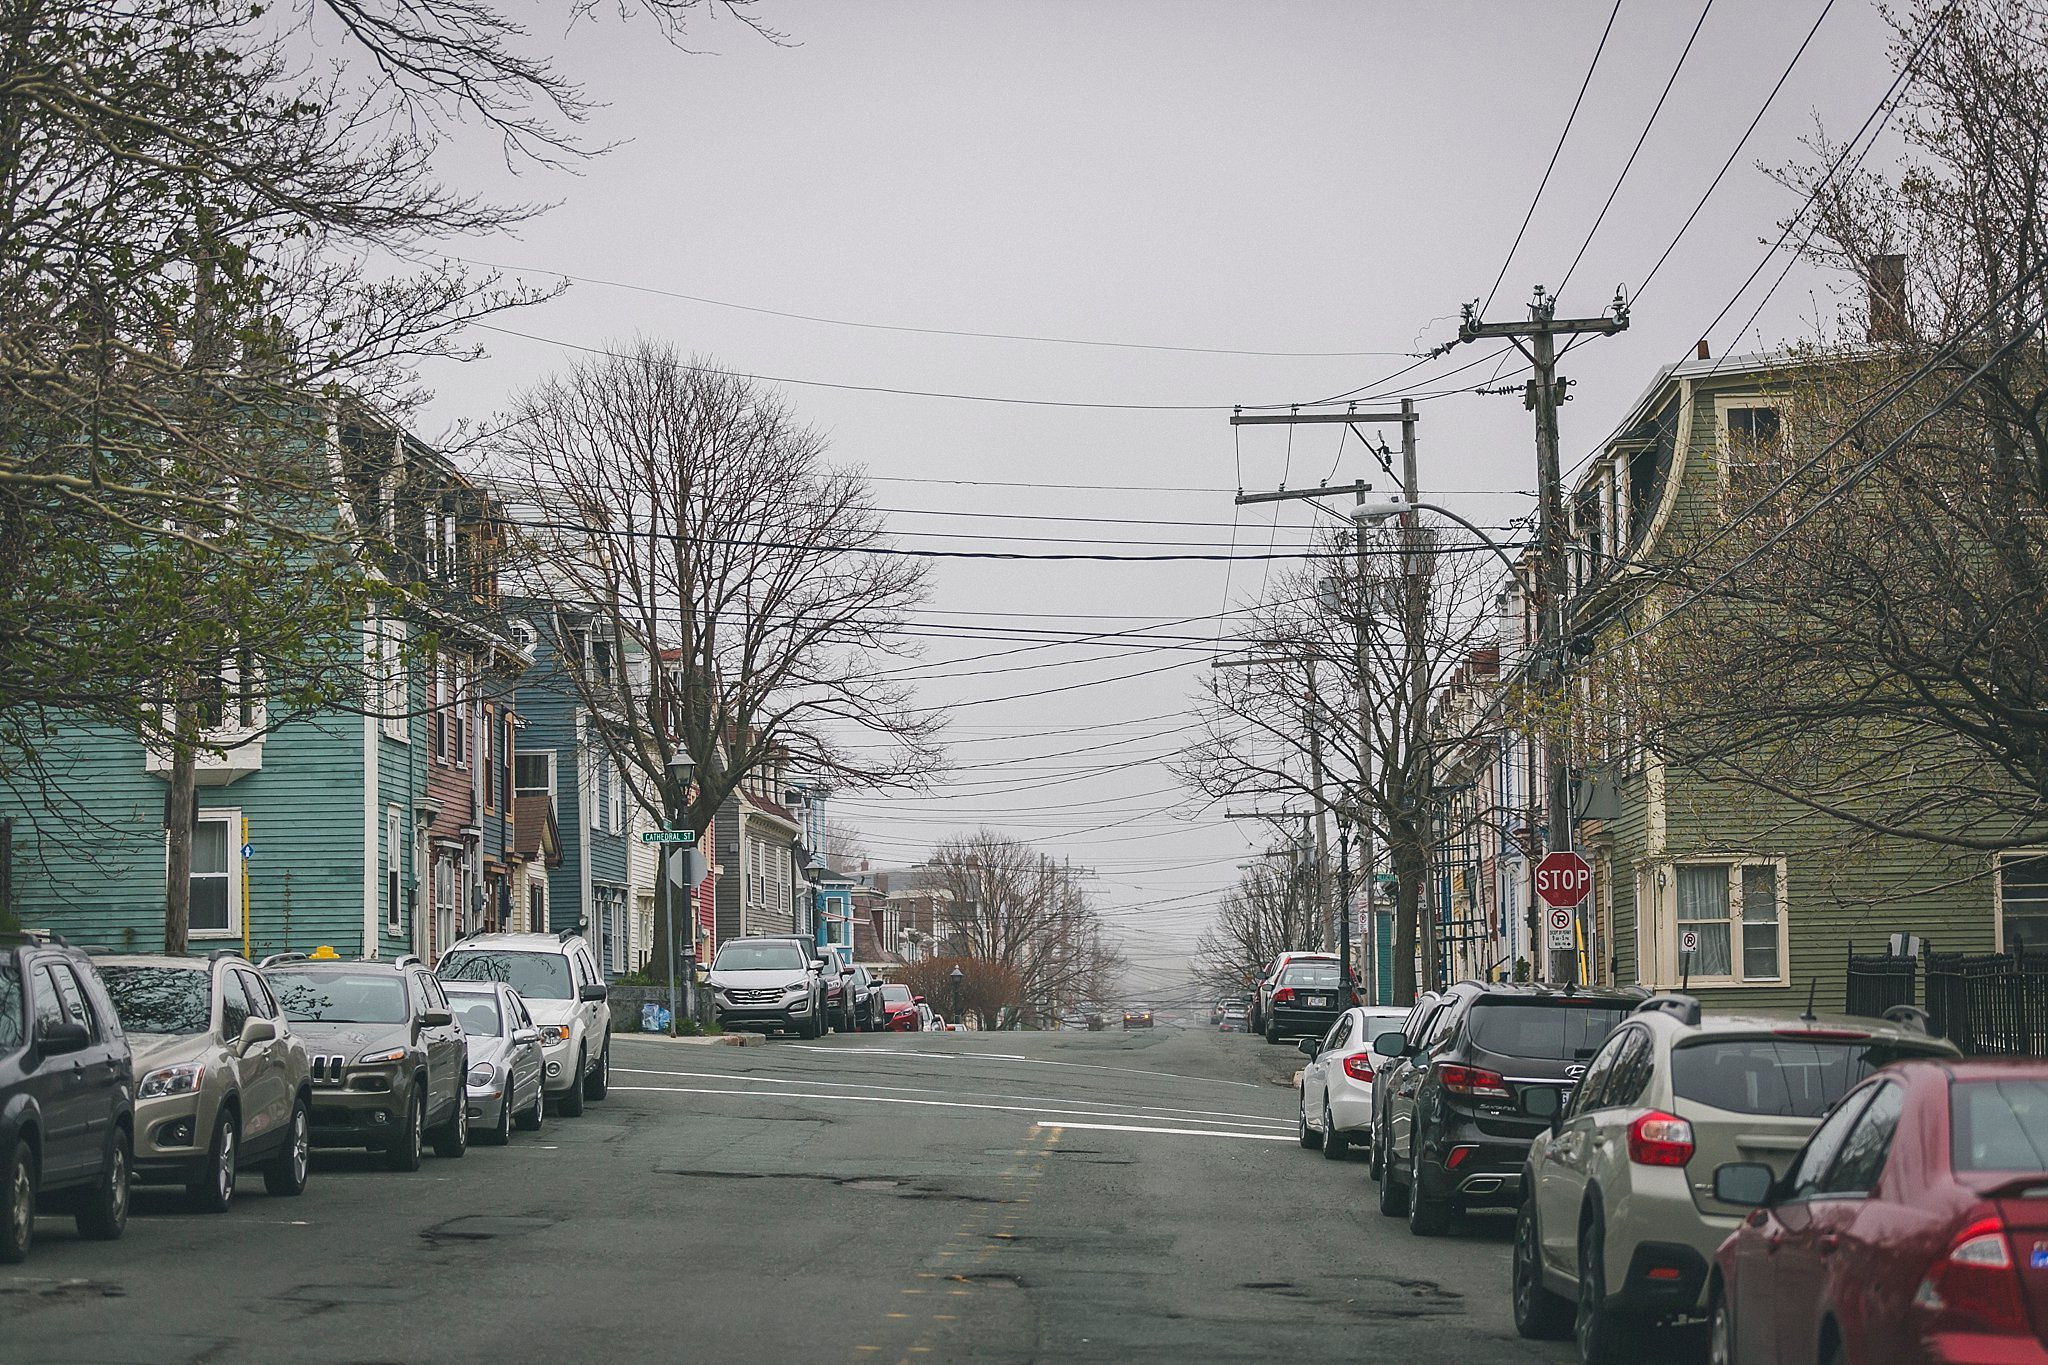 Gower Street was the location for this St. John's, Newfoundland wedding.